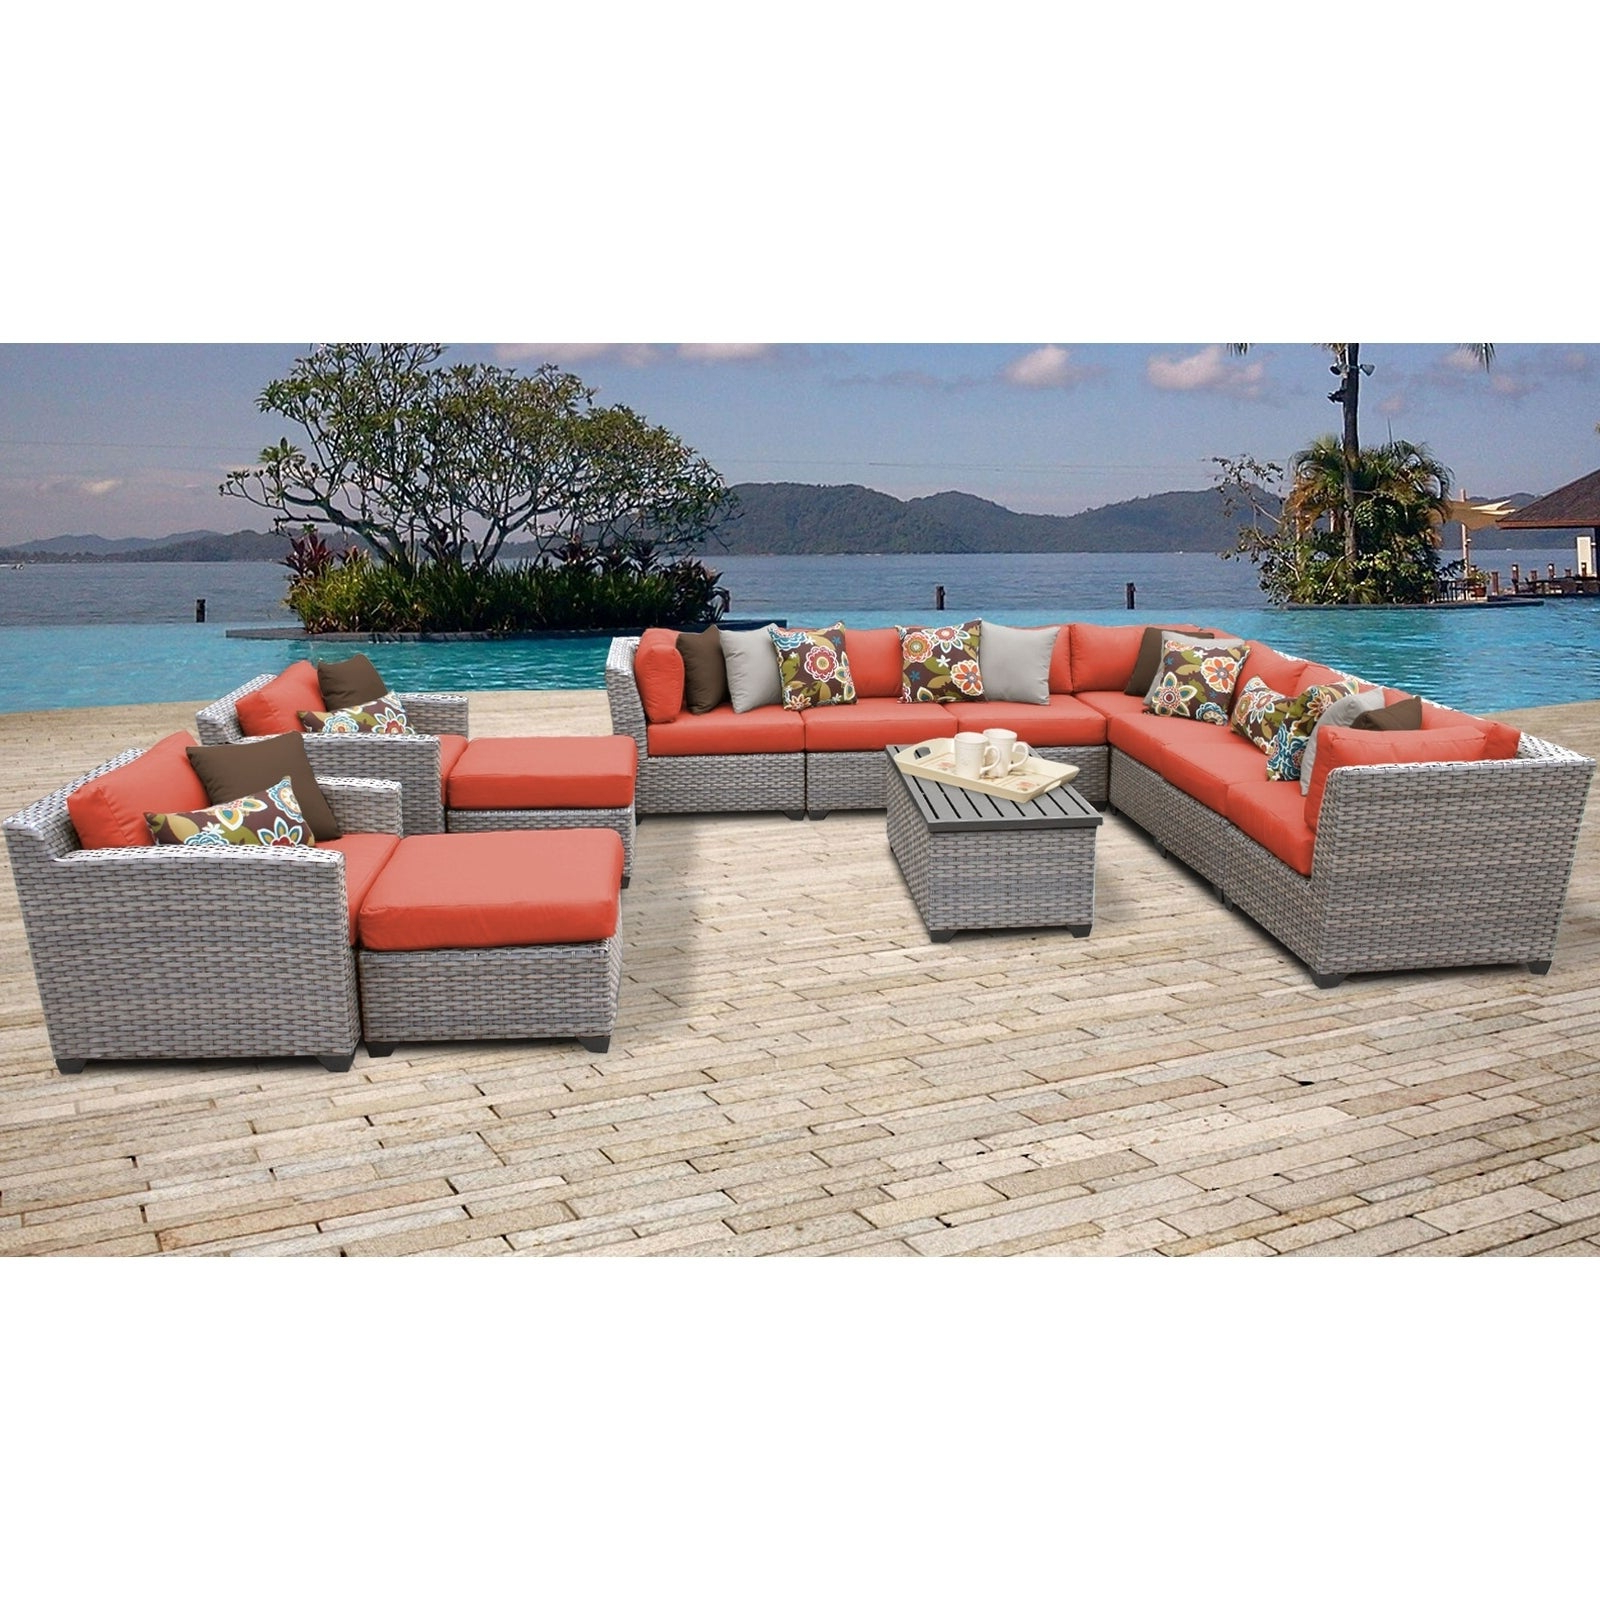 Outdoor 13 Piece Wicker Patio Sets With Cushions Regarding Latest Florence 13 Piece Outdoor Wicker Patio Furniture Set 13a (View 11 of 25)